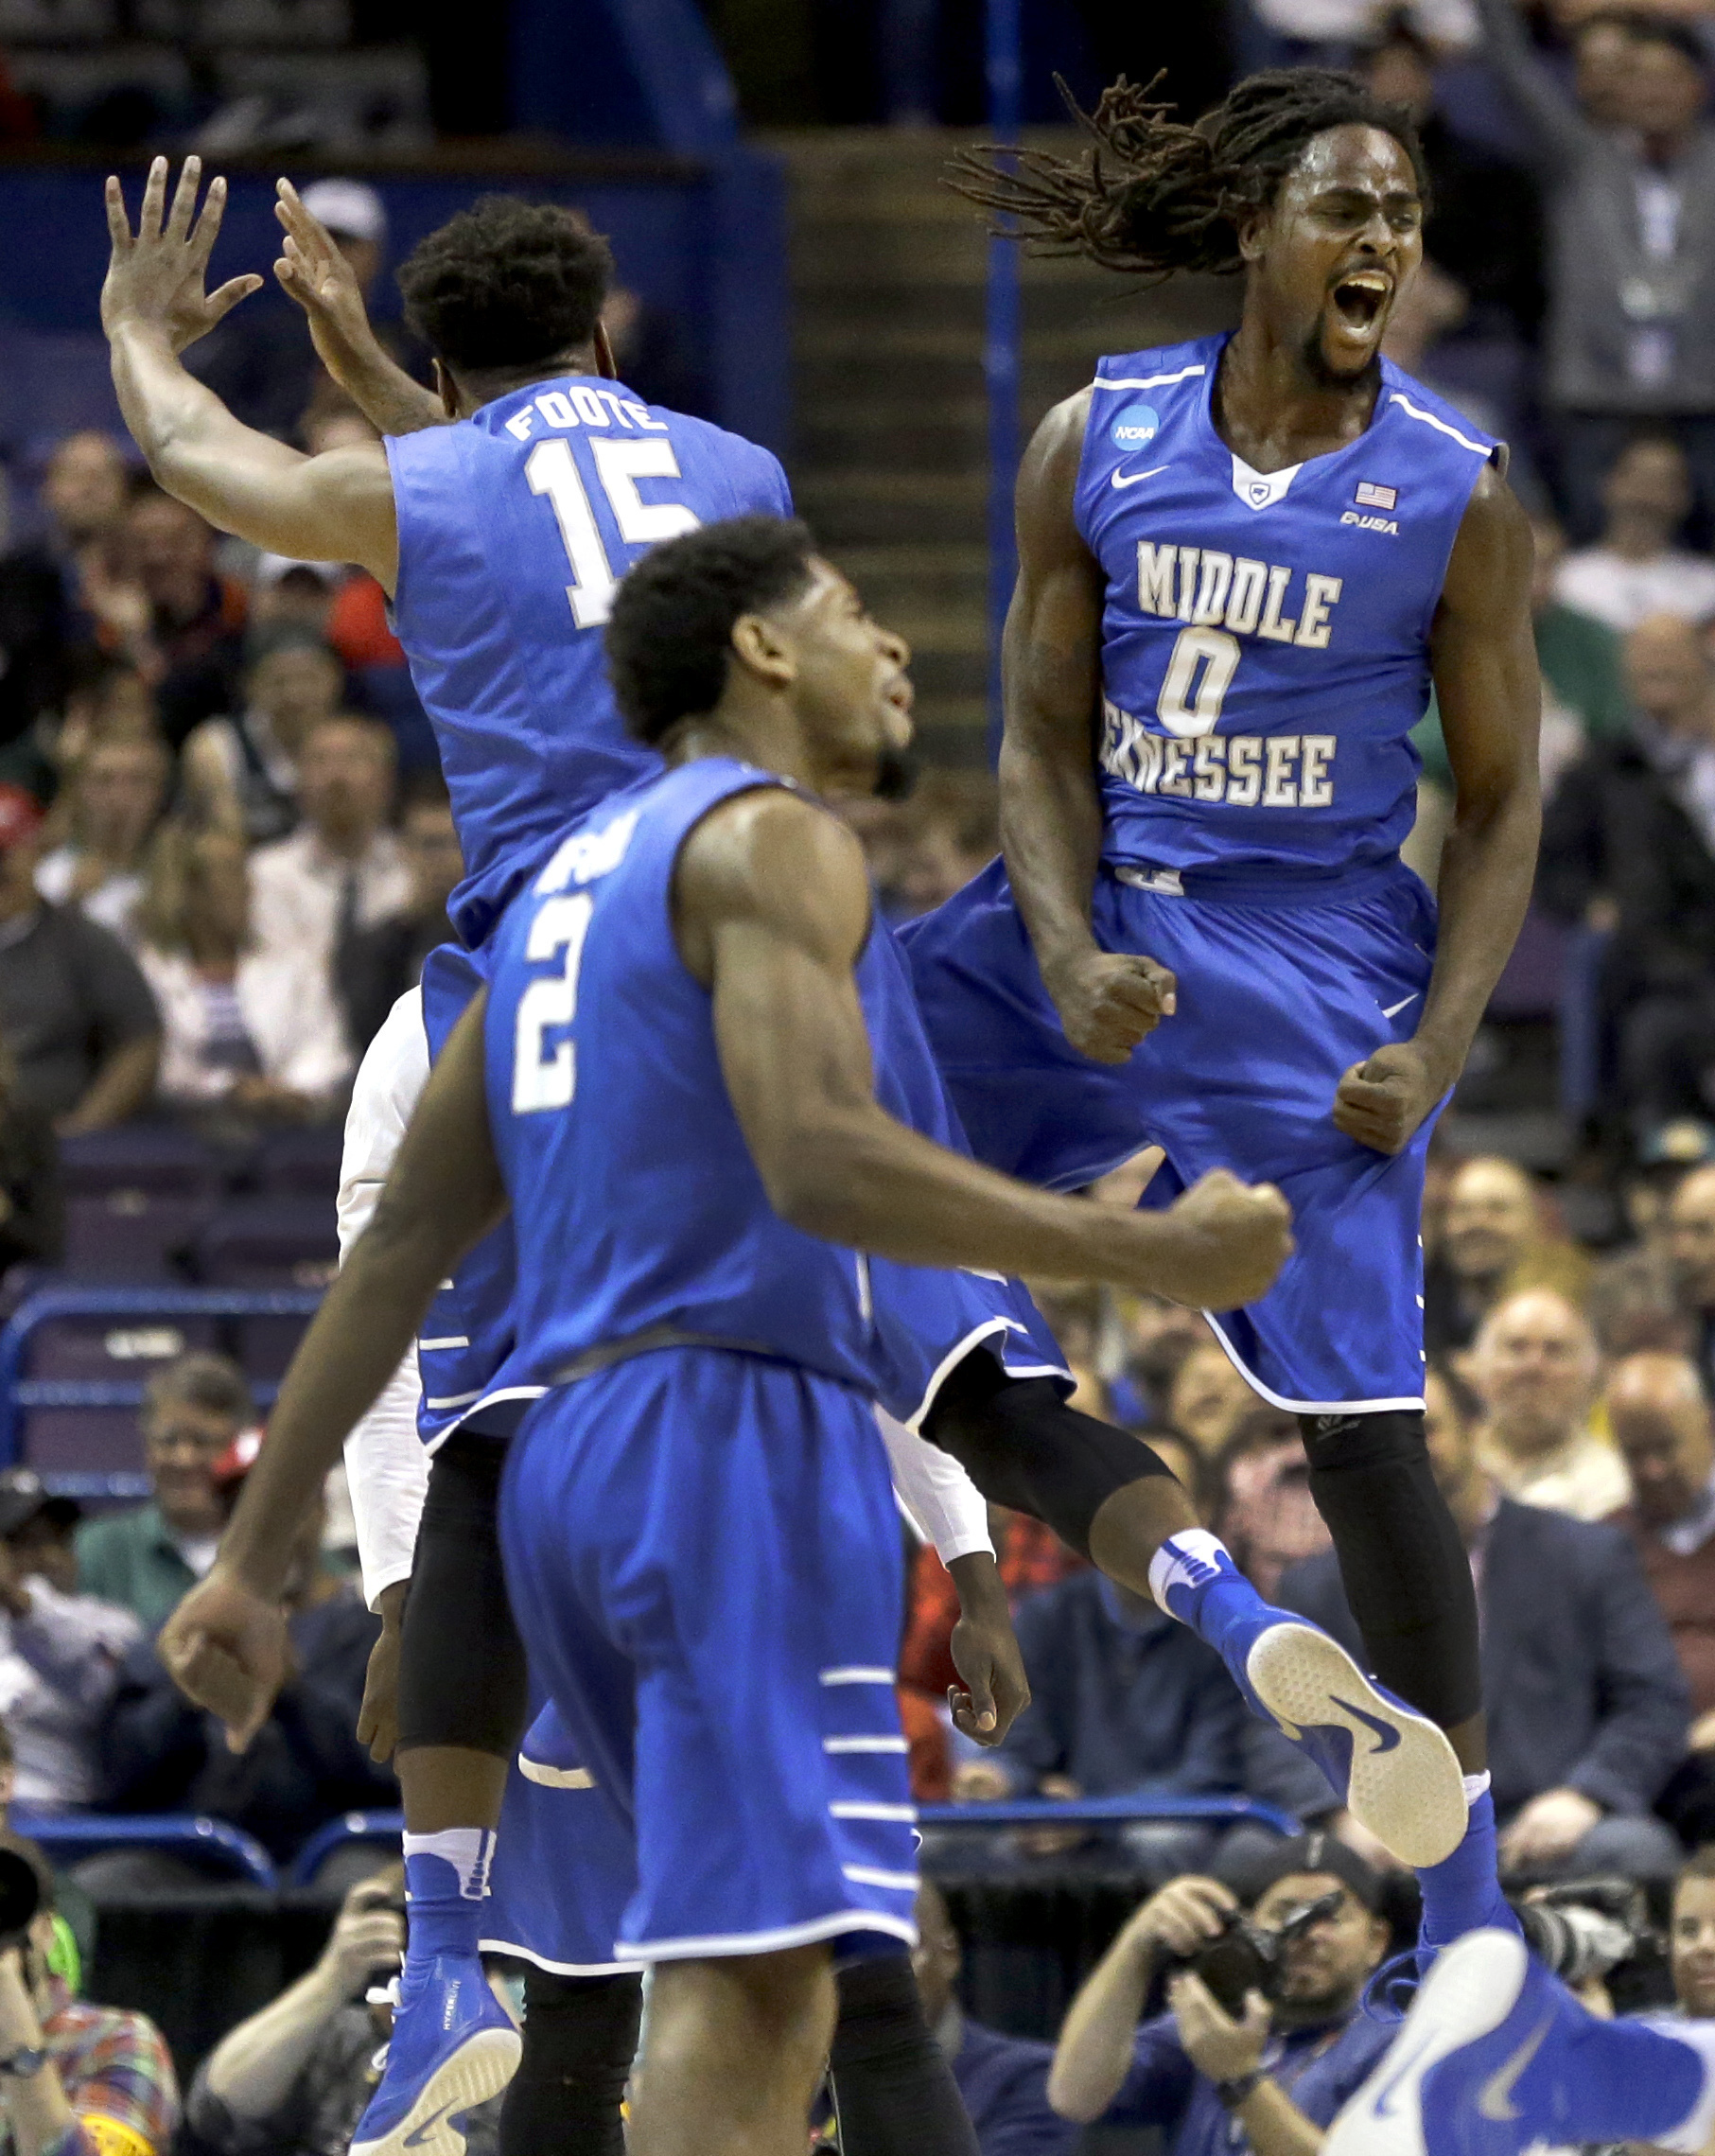 Middle Tennessee's Darnell Harris (0), Perrin Buford (2) and Aldonis Foote (15) celebrate during the first half in a first-round men's college basketball game against Michigan State in the NCAA tournament, Friday, March 18, 2016, in St. Louis. (AP Photo/J